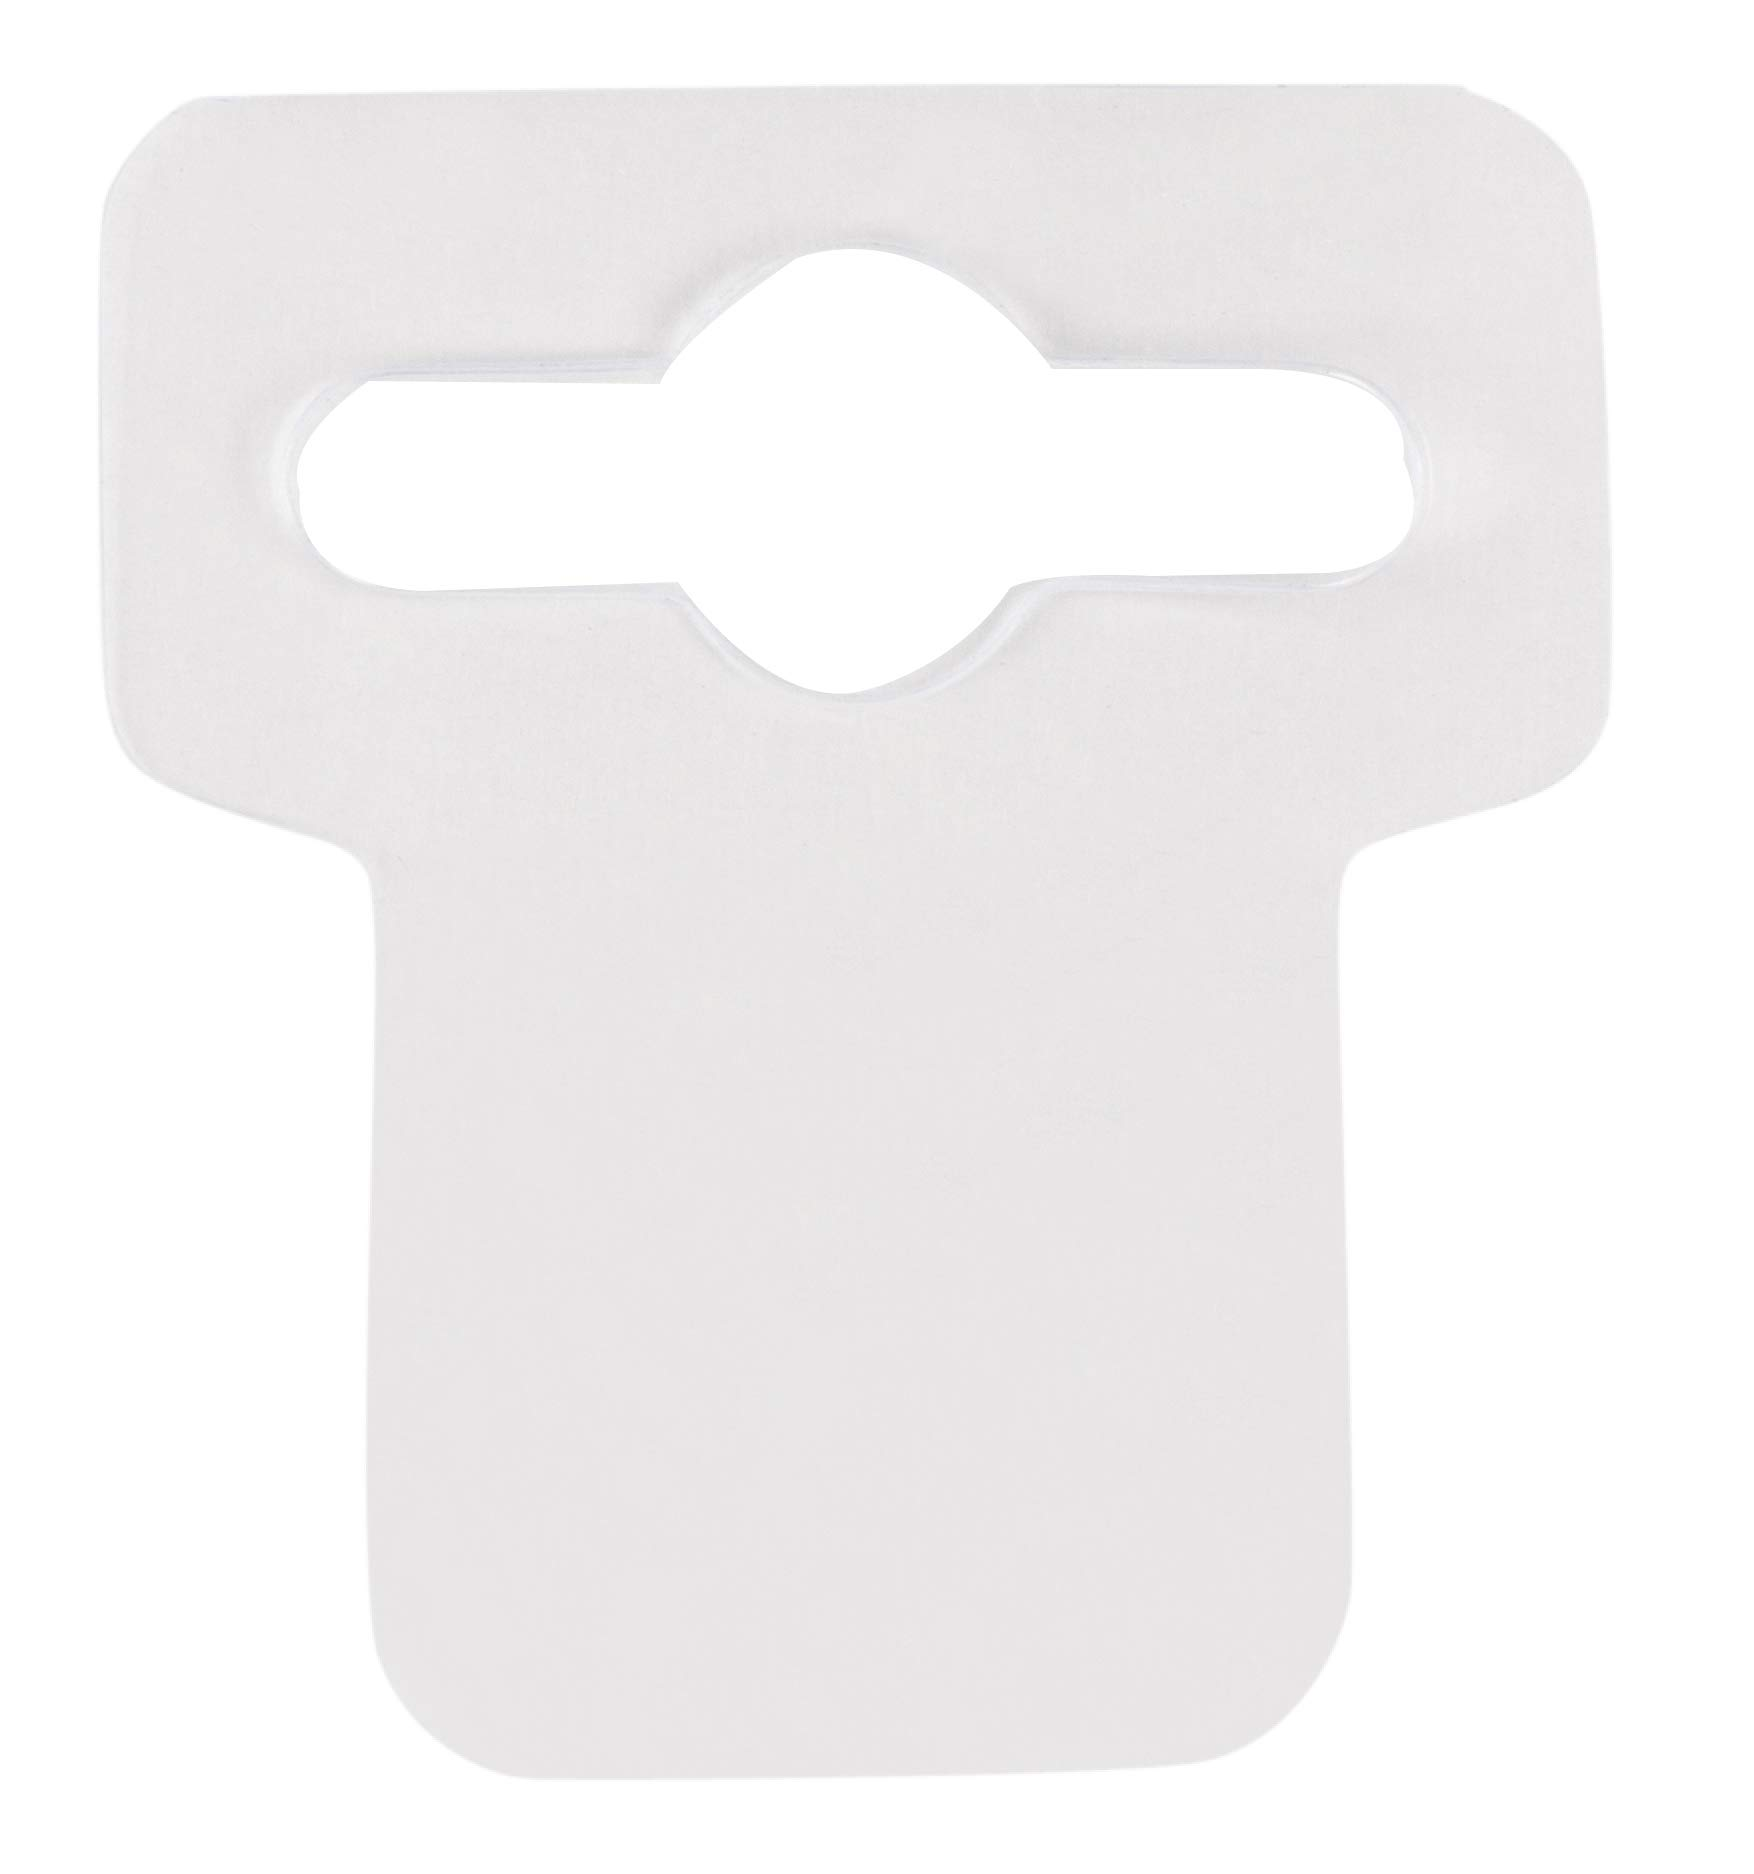 Plastic Hang Tabs - 1000-Pack Hanging Display Tabs with Peel and Stick Adhesive for Retail Store, Pegboard, Slatwall Hook Hangers, Euro Slot Hole Design, Clear, 1.6 x 1.78 Inches